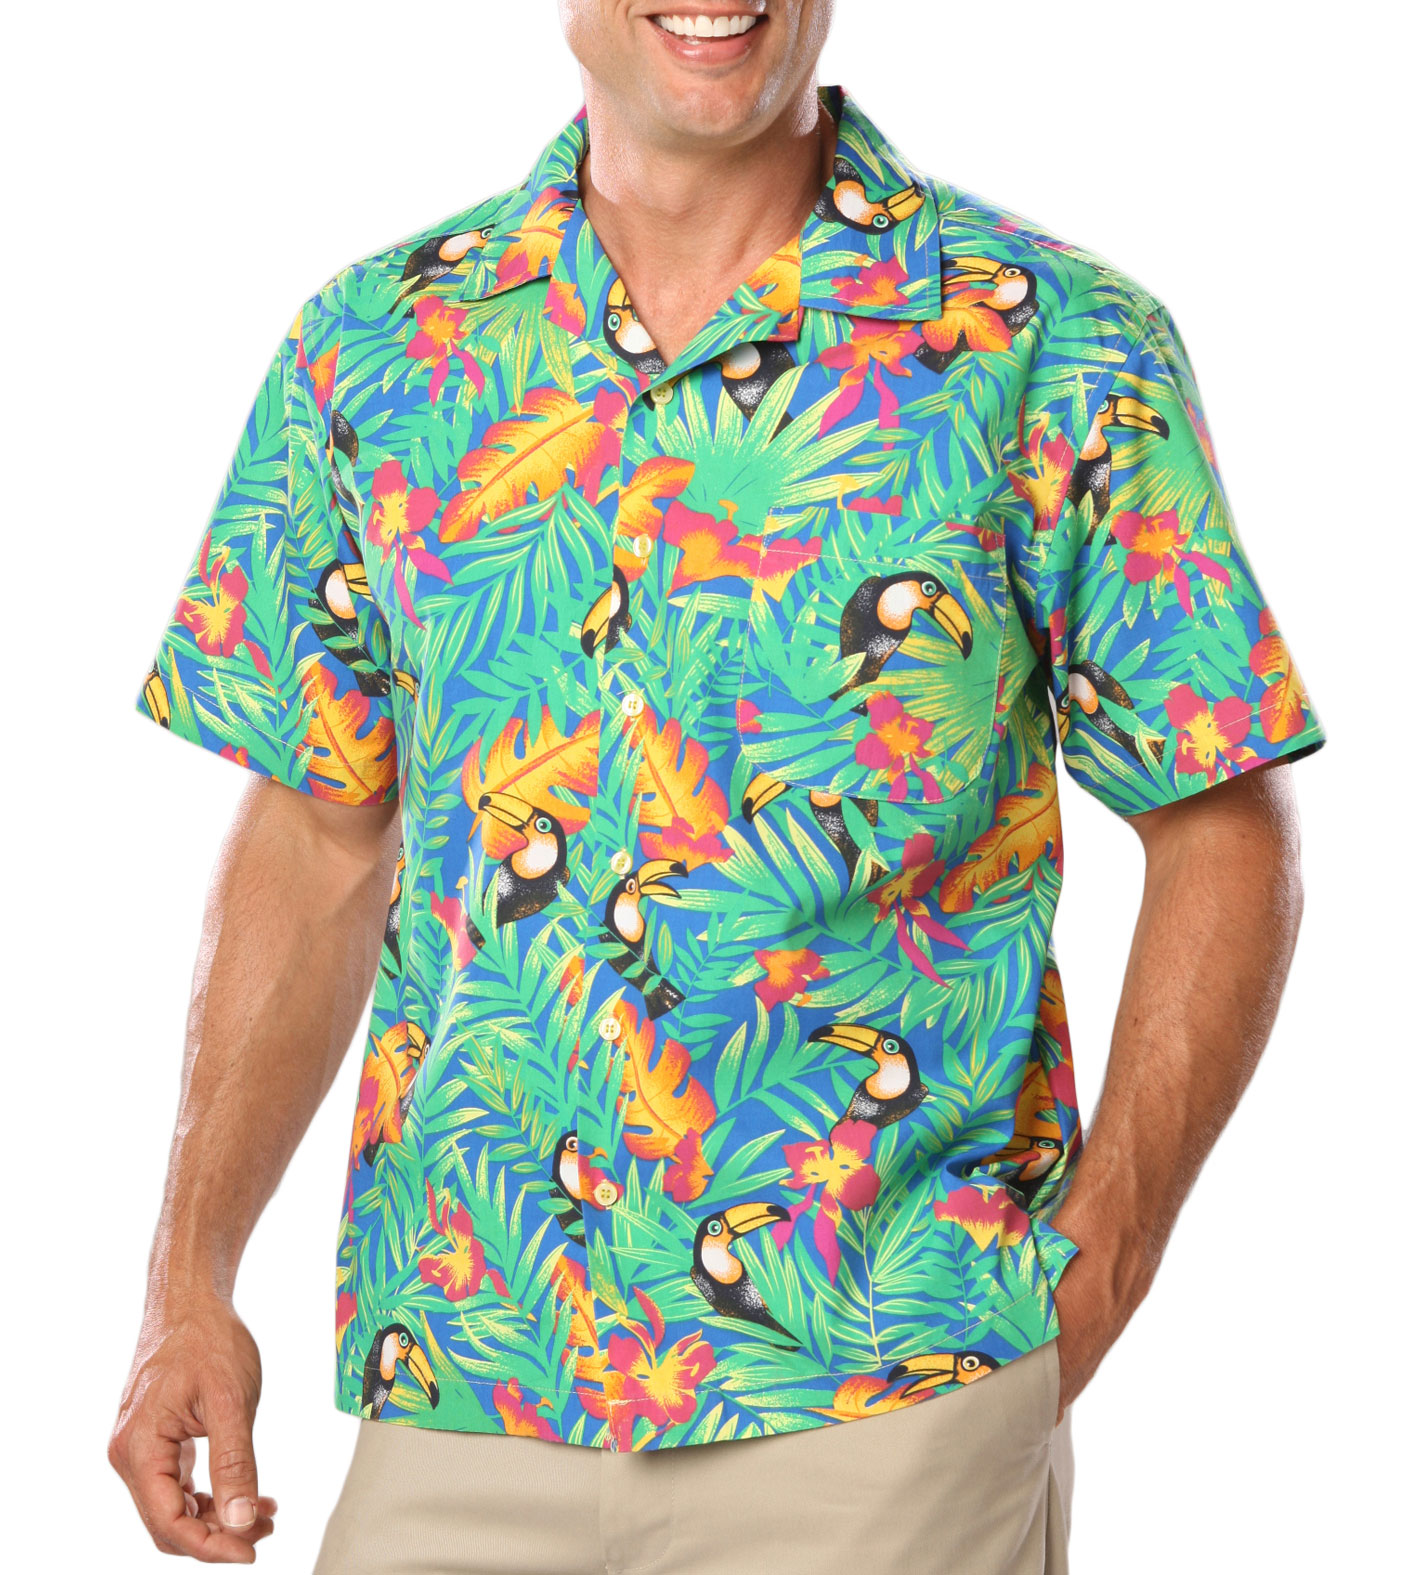 New Stain Release, Tropical Print Camp Shirts